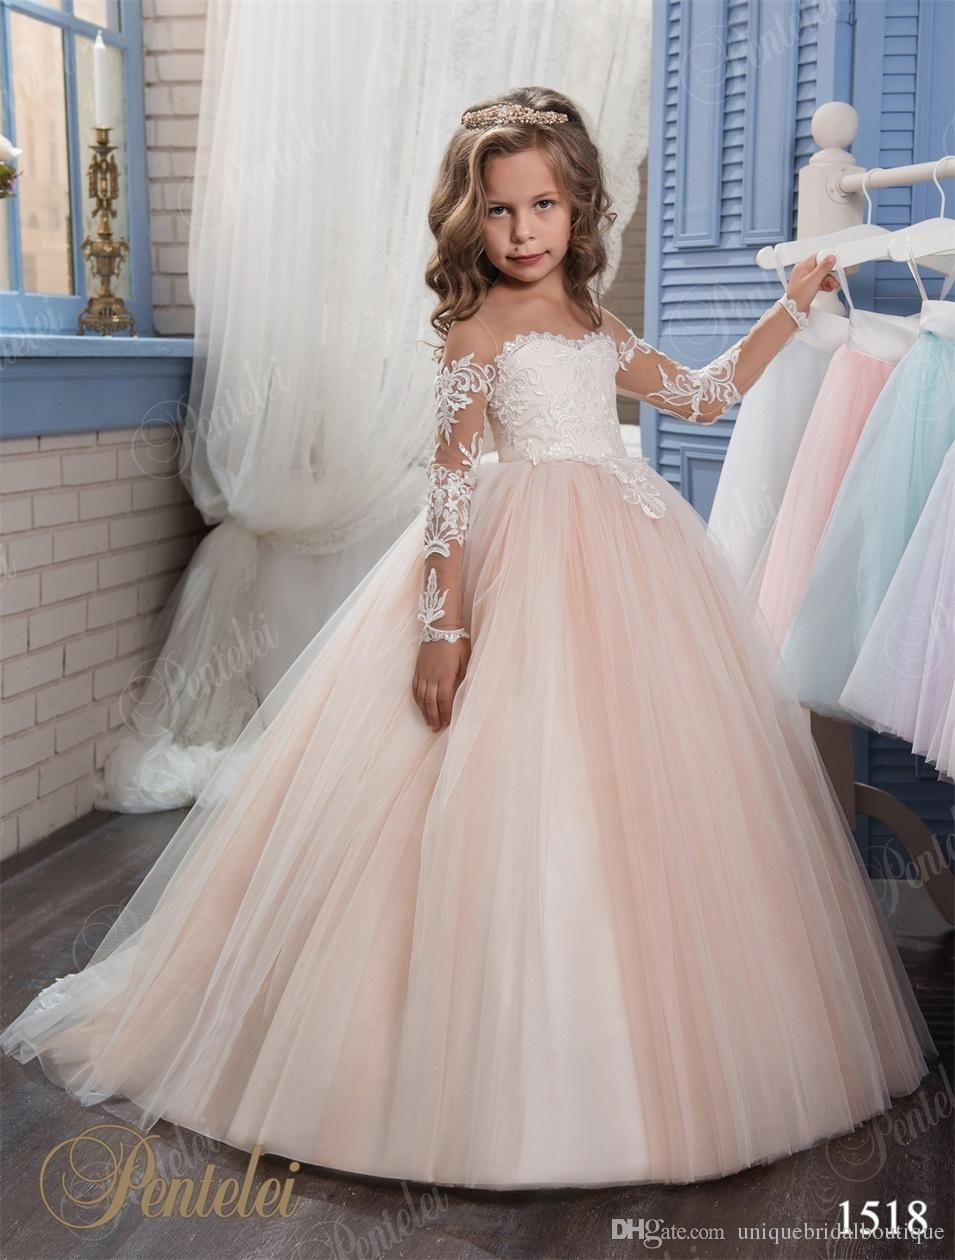 Kids wedding dresses 2017 pentelei with illusion long sleeves and wedding dress ombrellifo Image collections